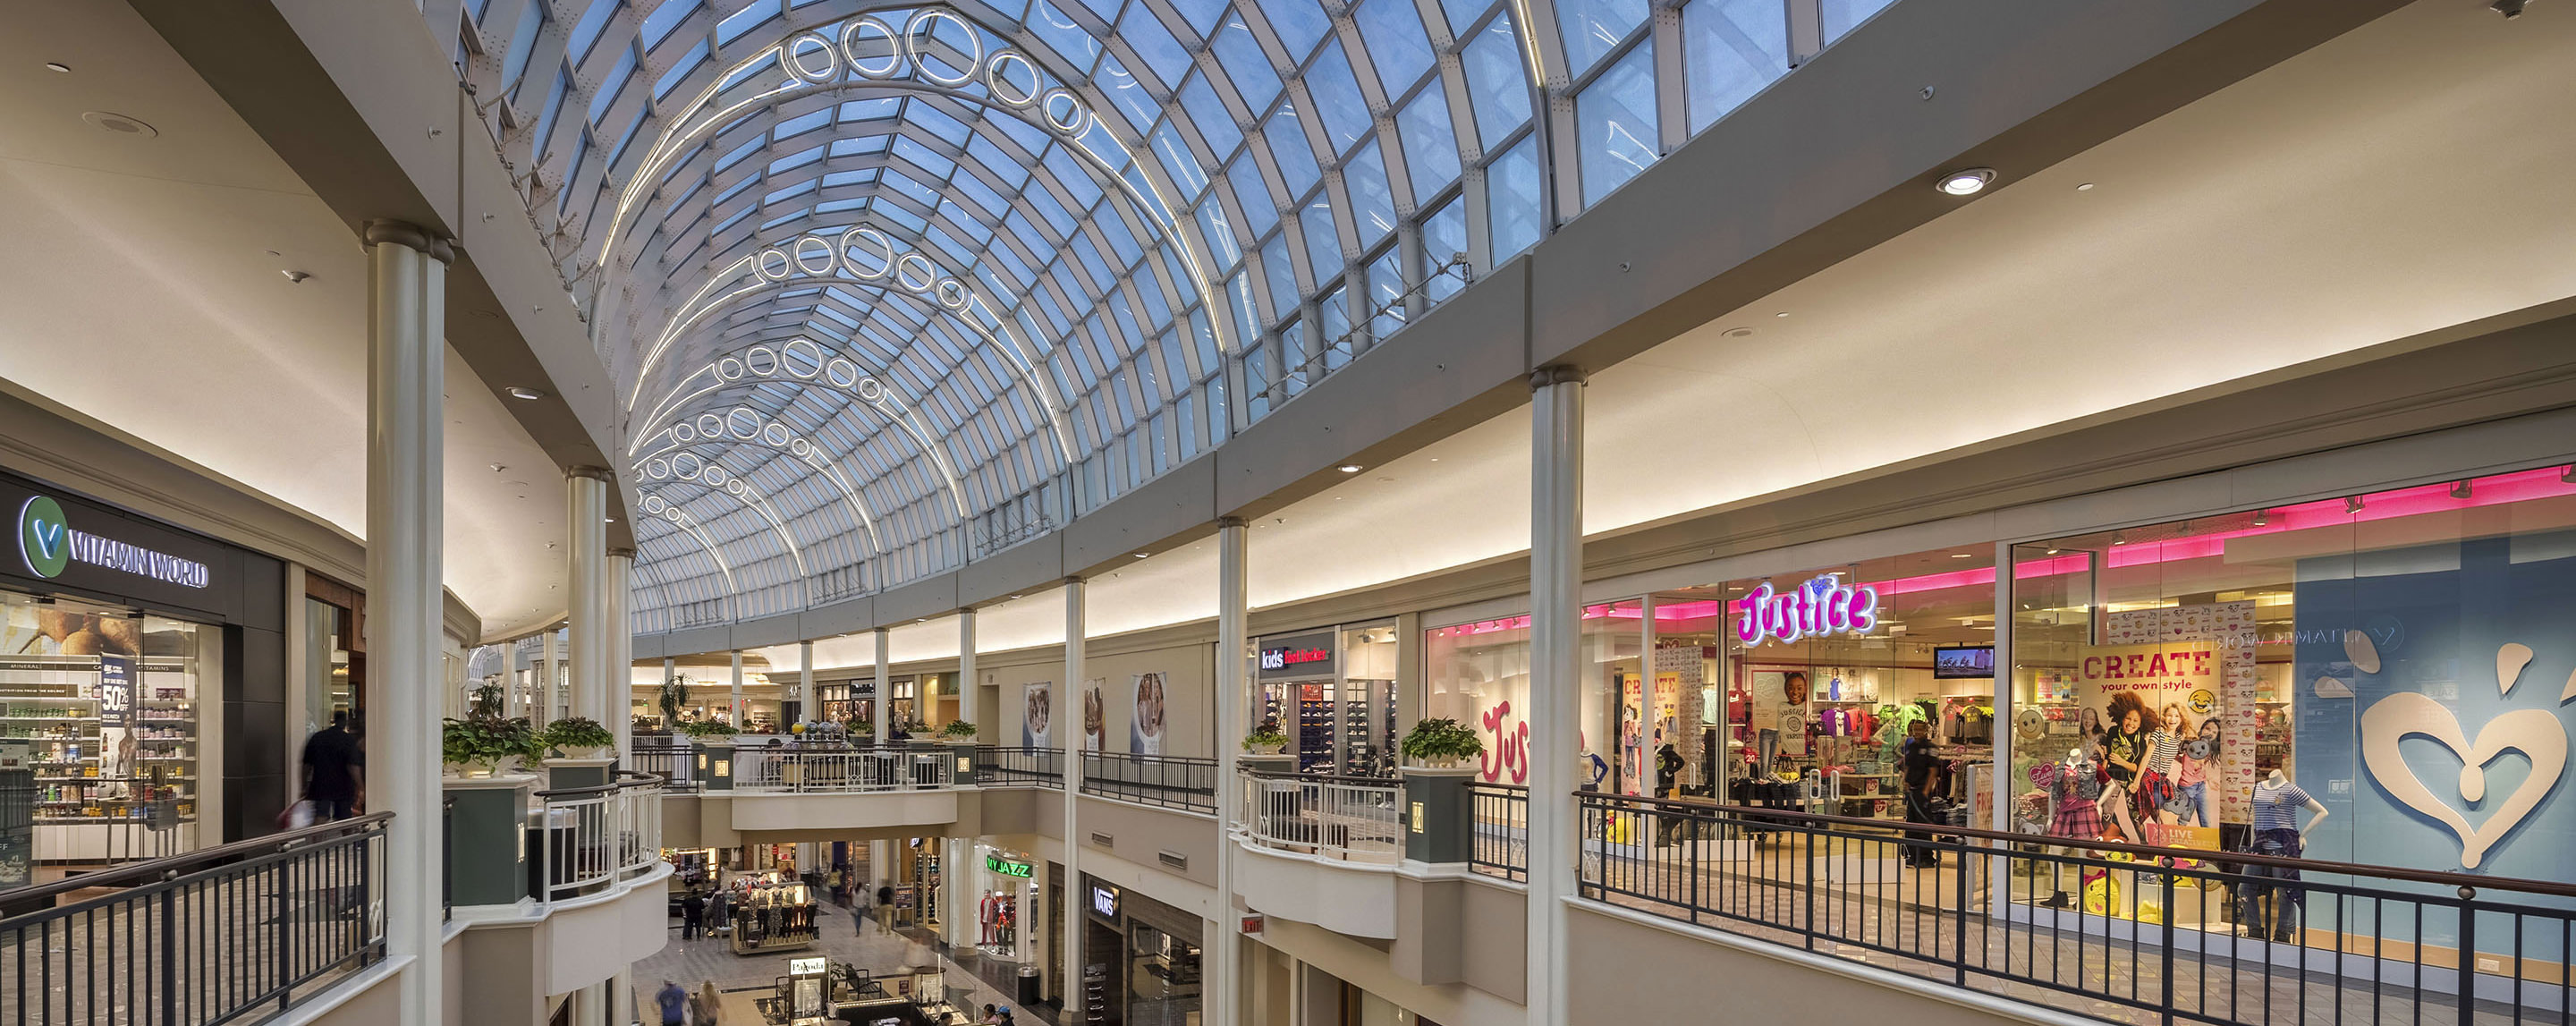 Upstairs inside the Carolina Place mall, store fronts display products and the sun is shining through the glass roof.